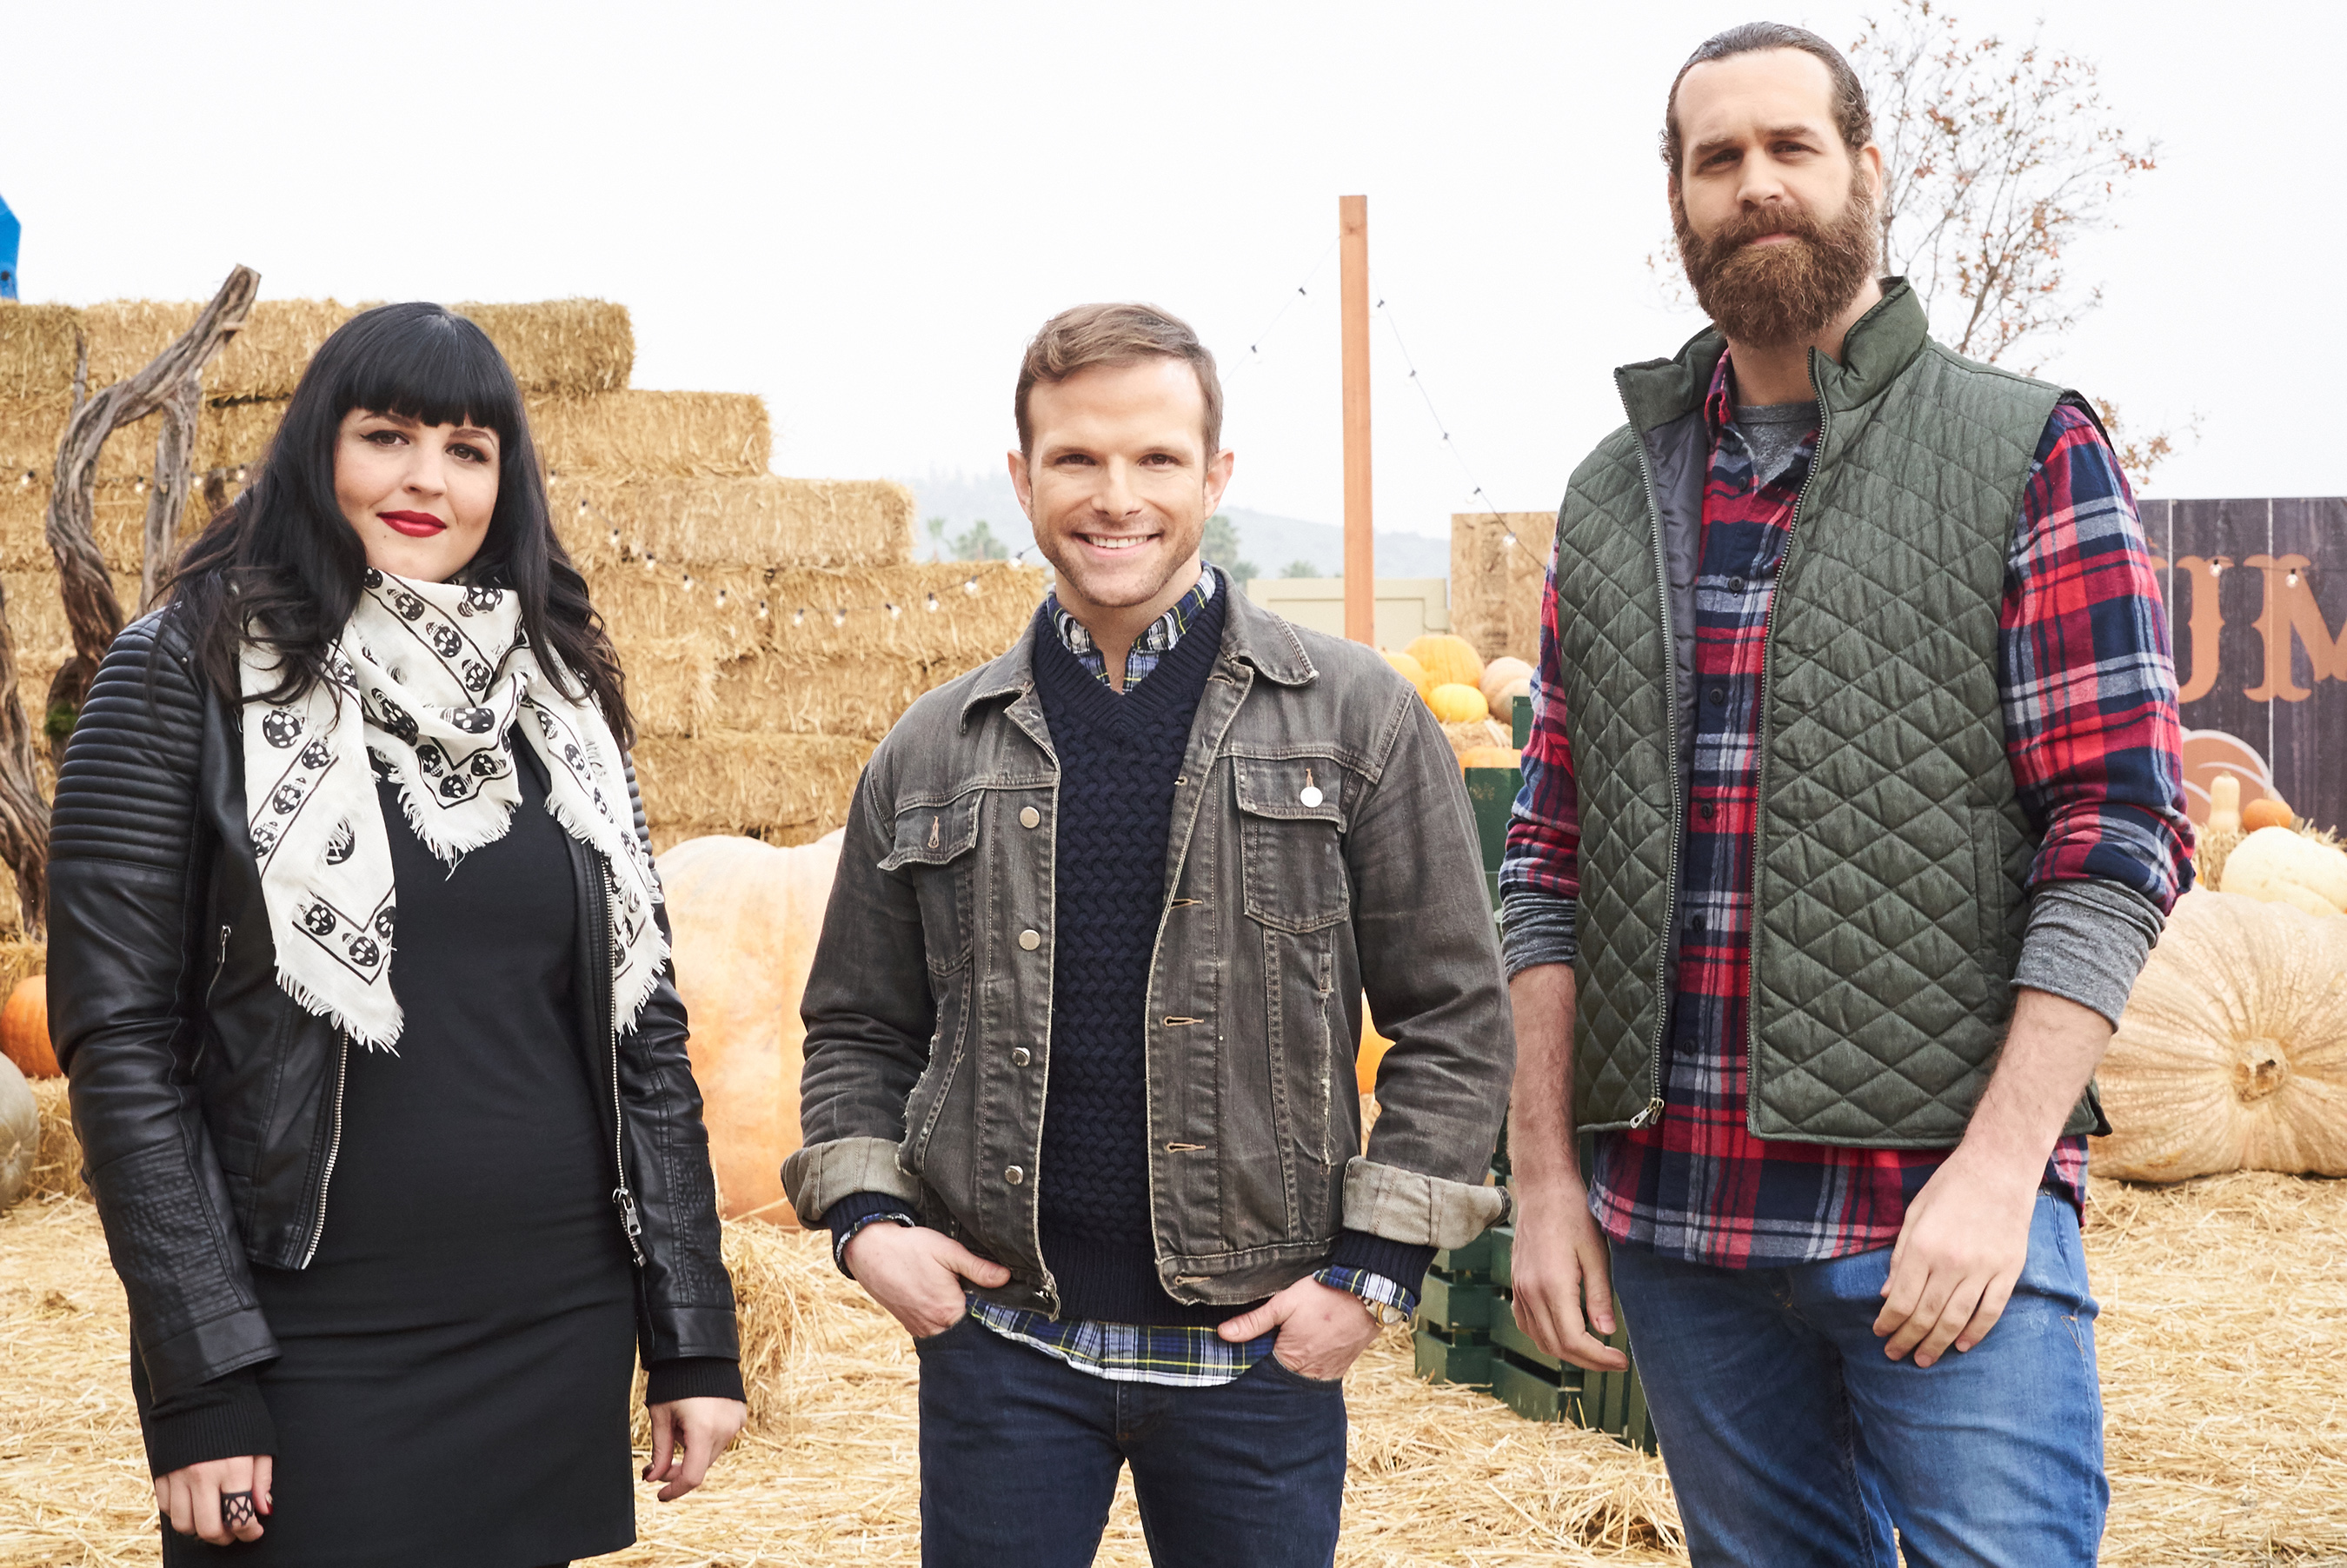 Judges Bianca Appice and Zac Young with host Harley Morenstein Food Network's Halloween Wars: Hayride of Horror